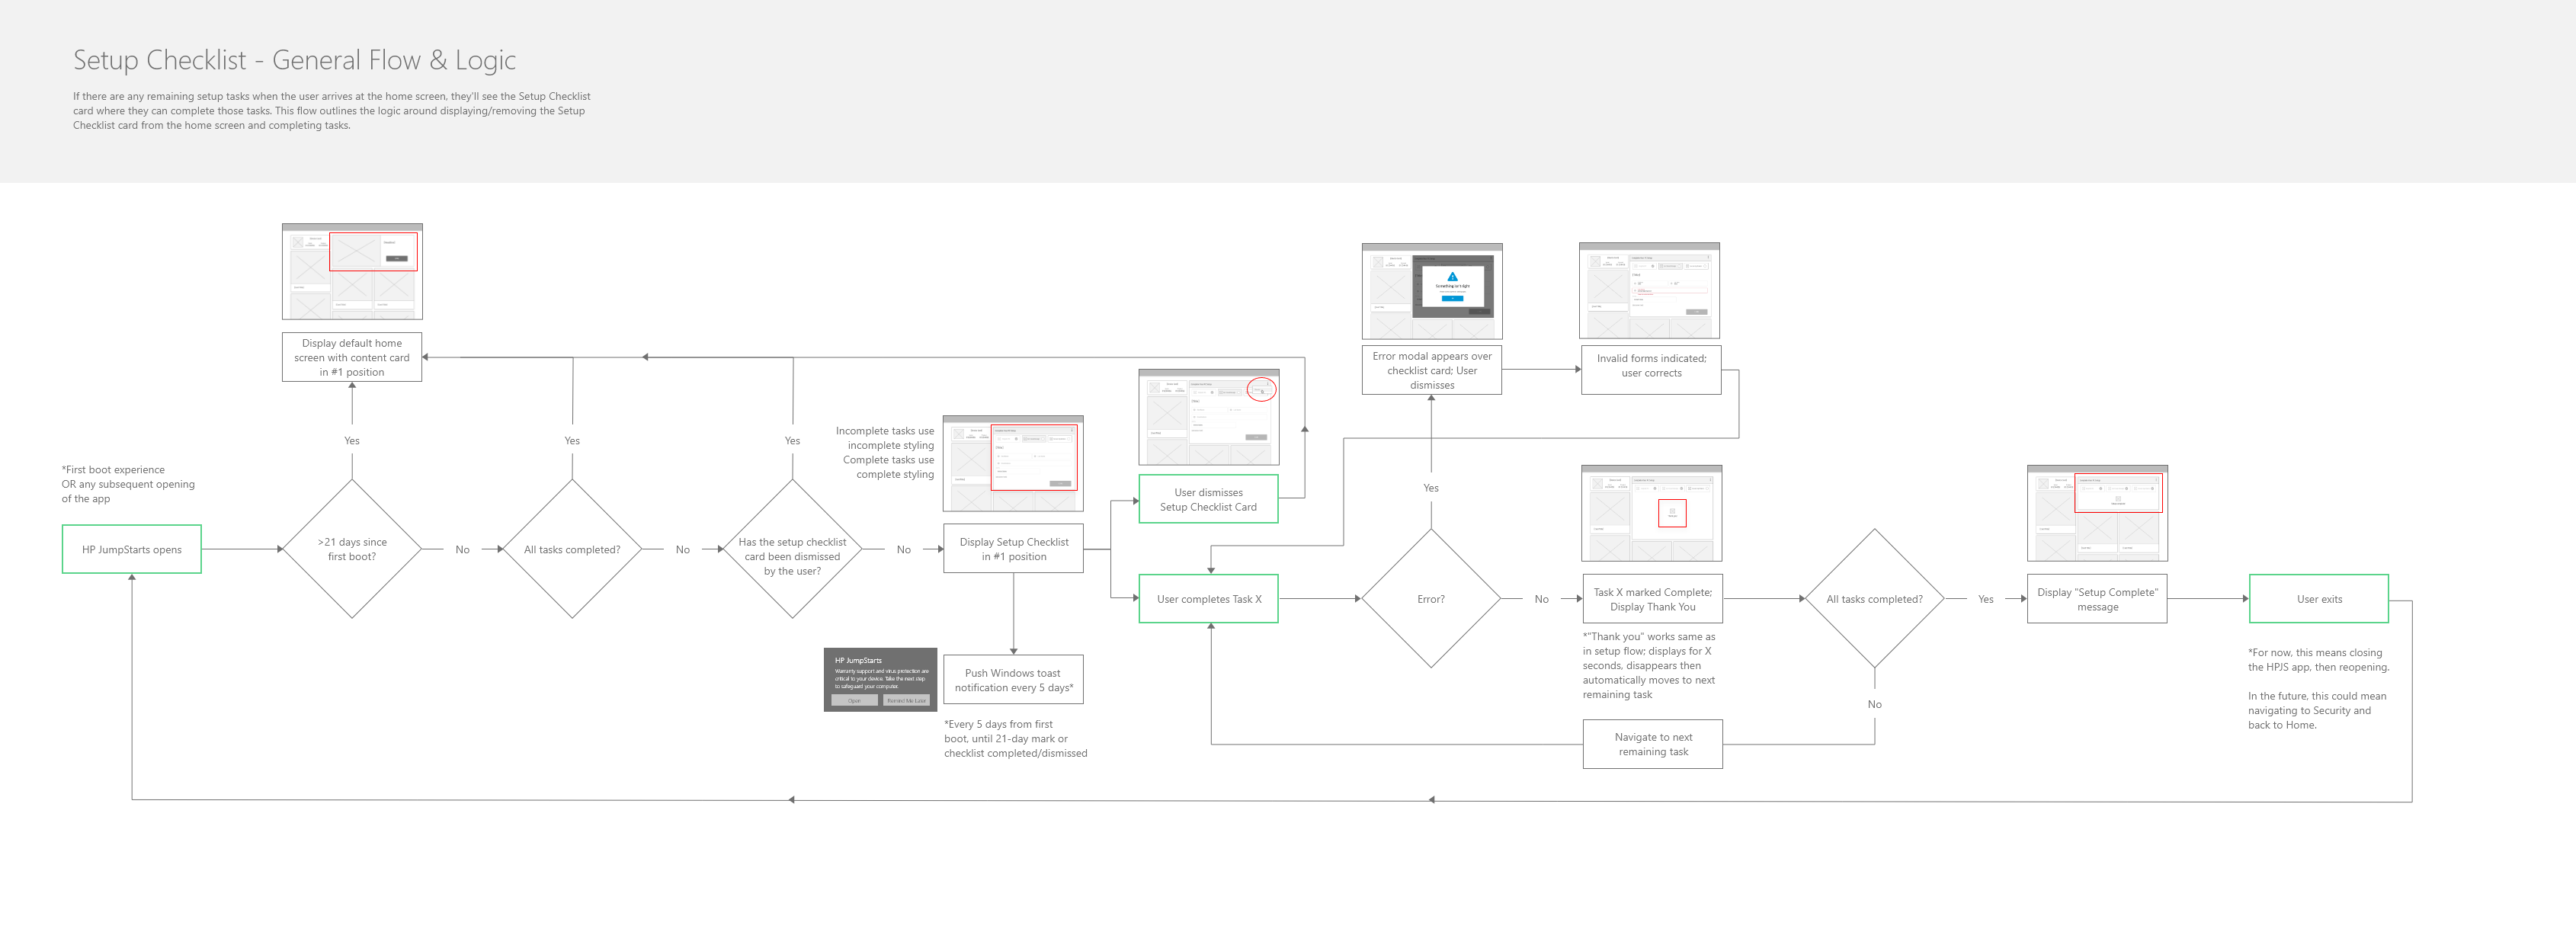 Flow and logic diagram for a certain component of HP JumpStart.